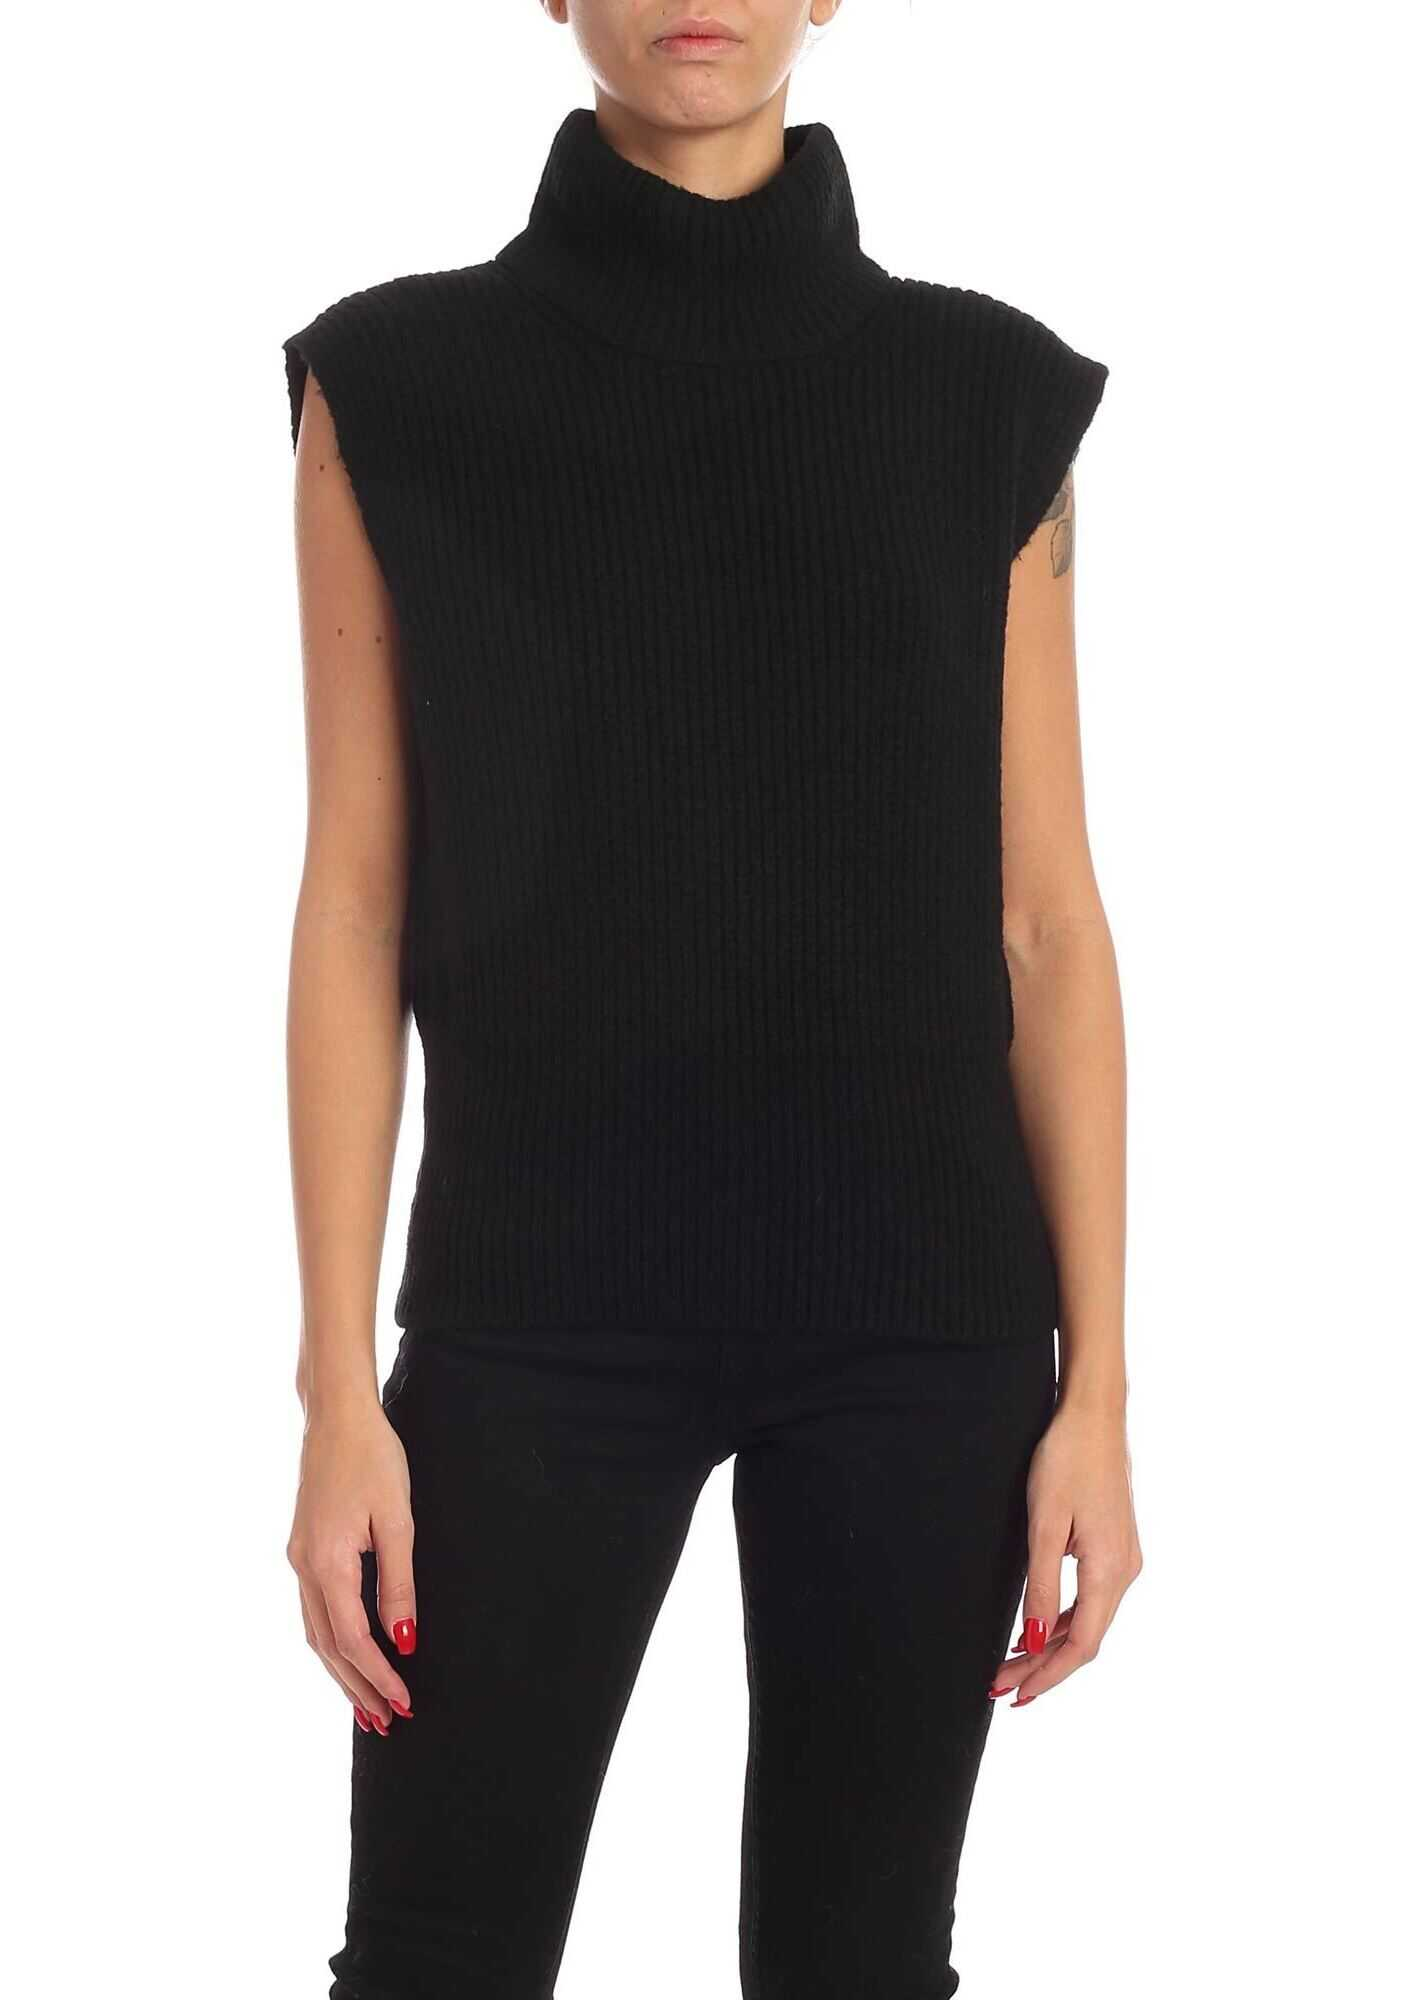 Logo Detail Turtleneck Vest In Black thumbnail